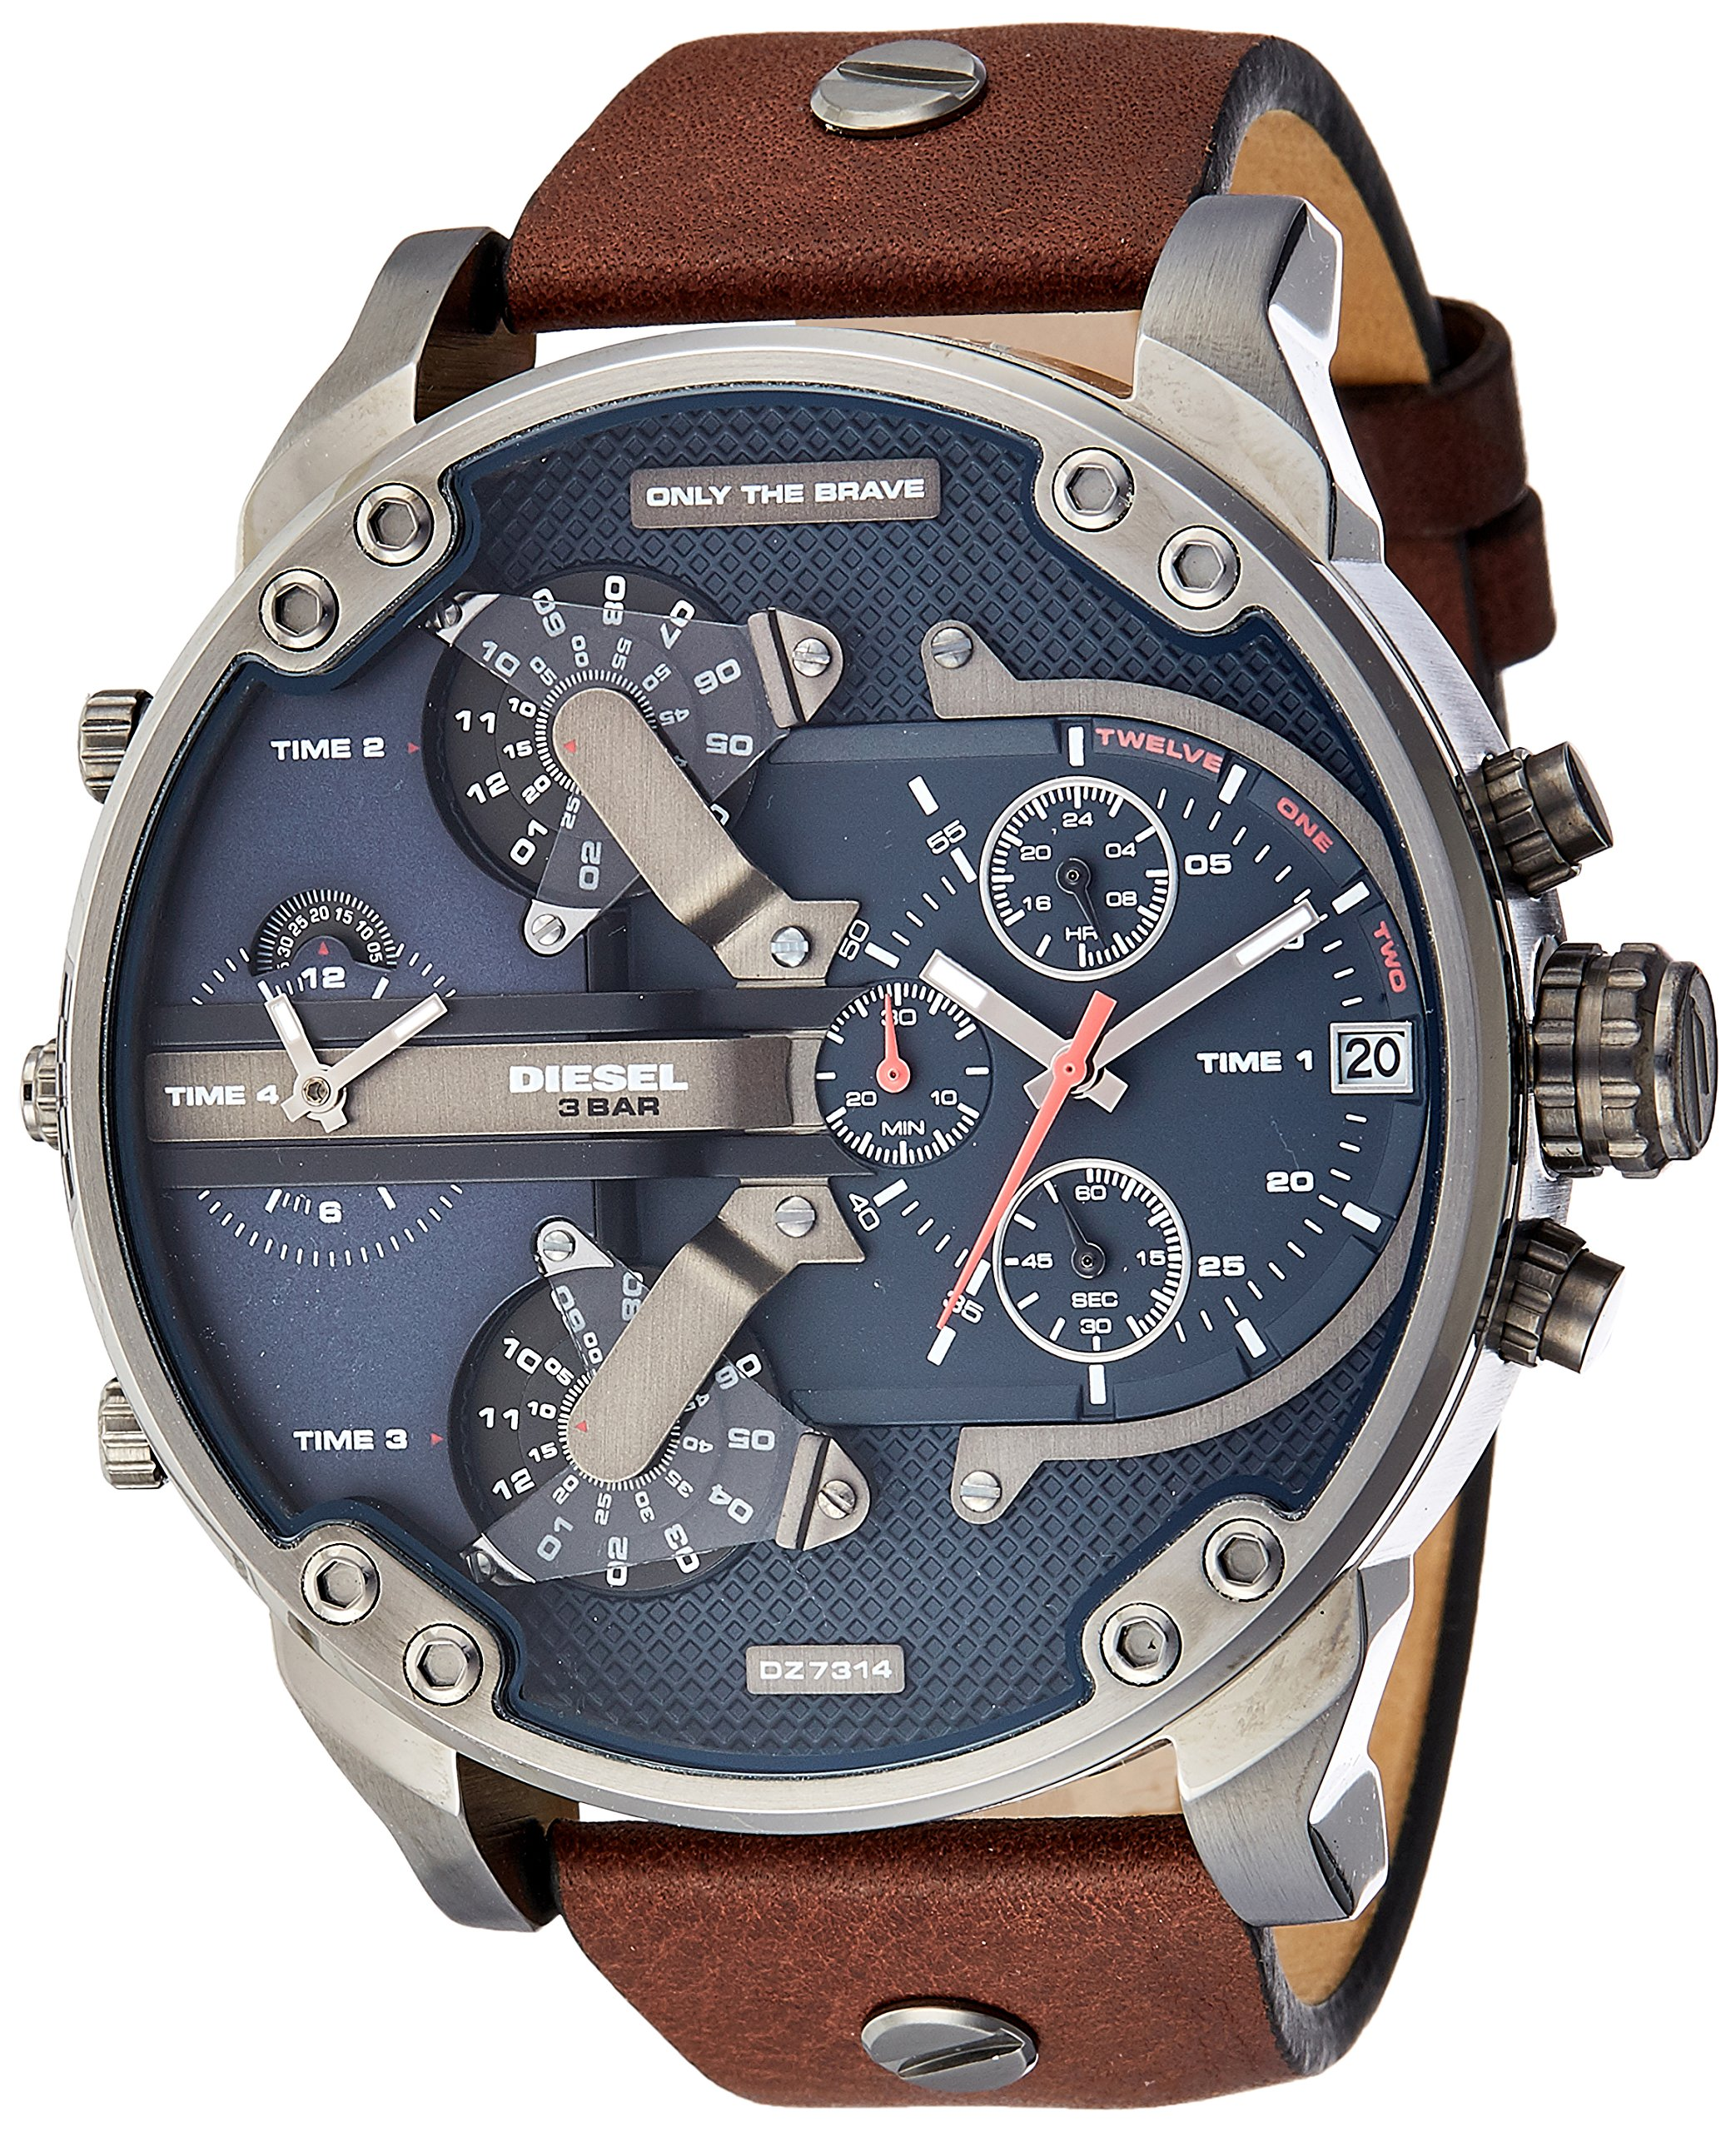 Diesel Men's Mr Daddy 2.0 Quartz Stainless Steel and Leather Chronograph Watch, Color: Grey, Brown (Model: DZ7314) by Diesel